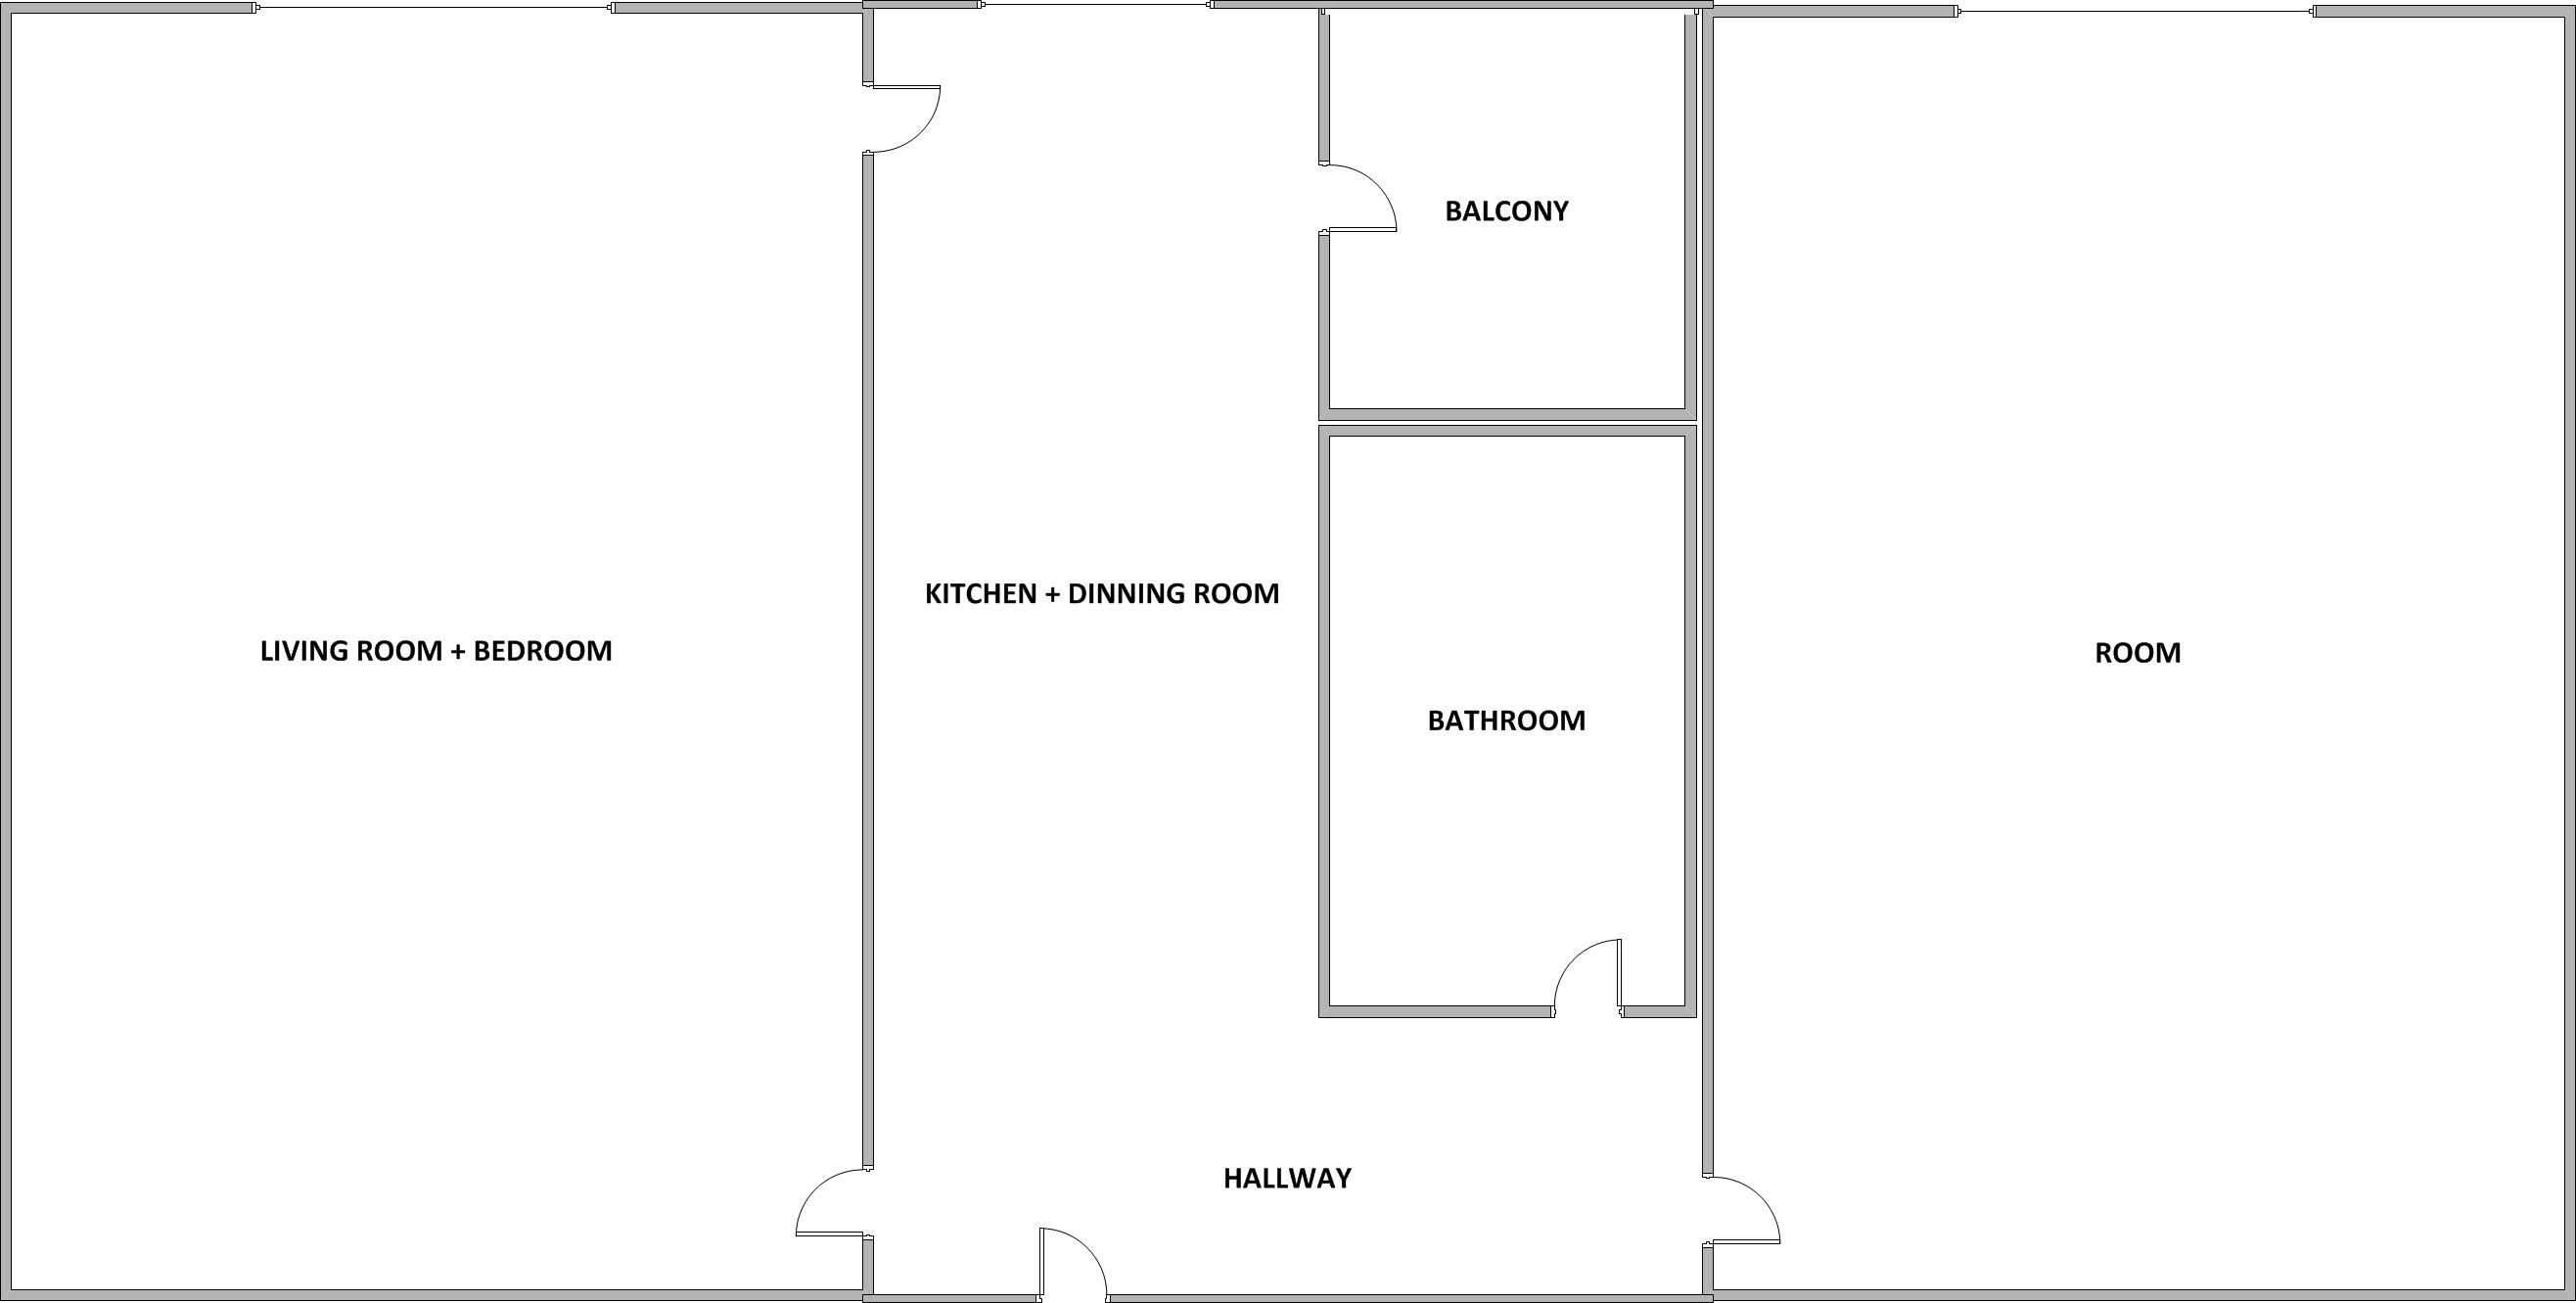 Combine living room and bedroom floor plan panel for Living room floor plan